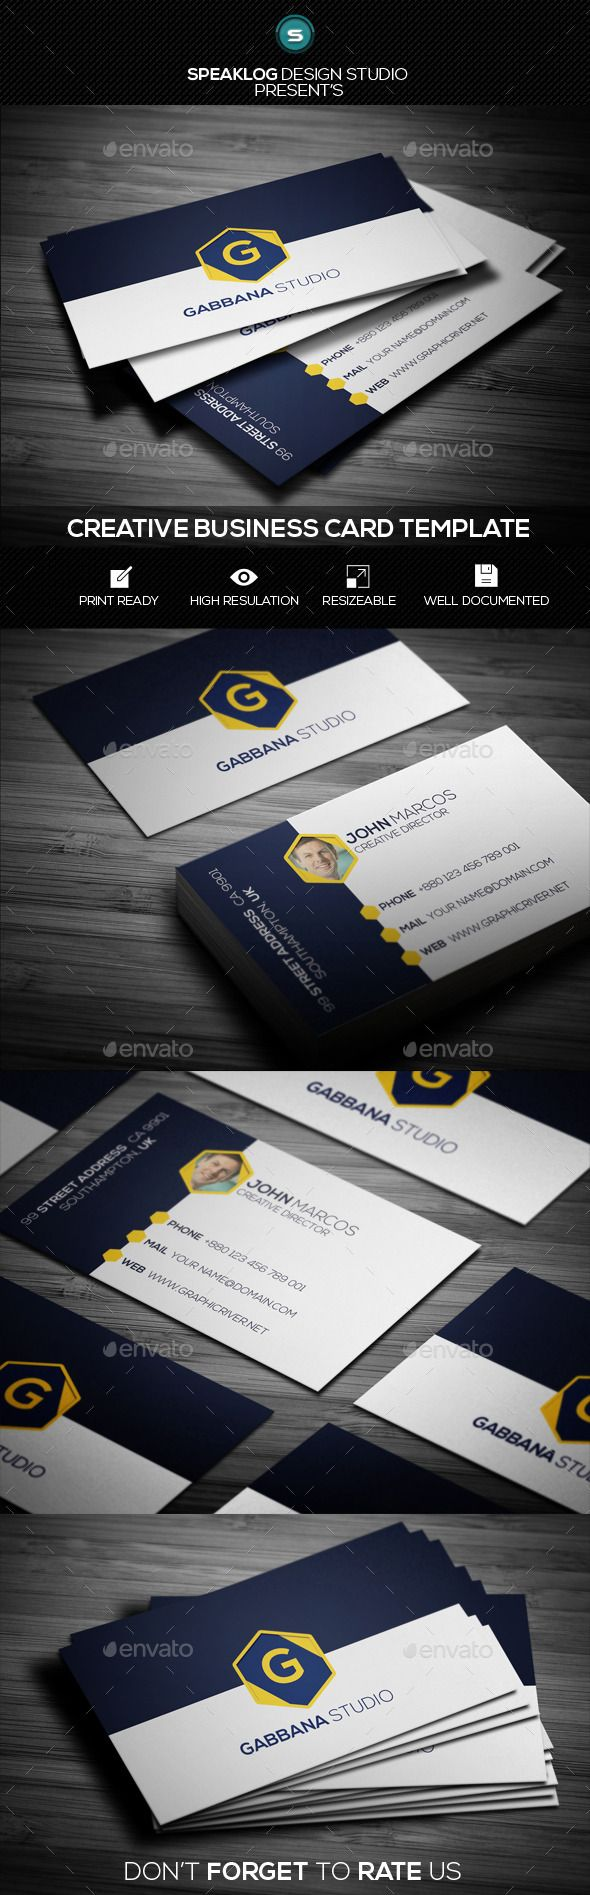 Business Cards Southampton Uk Images - Card Design And Card Template